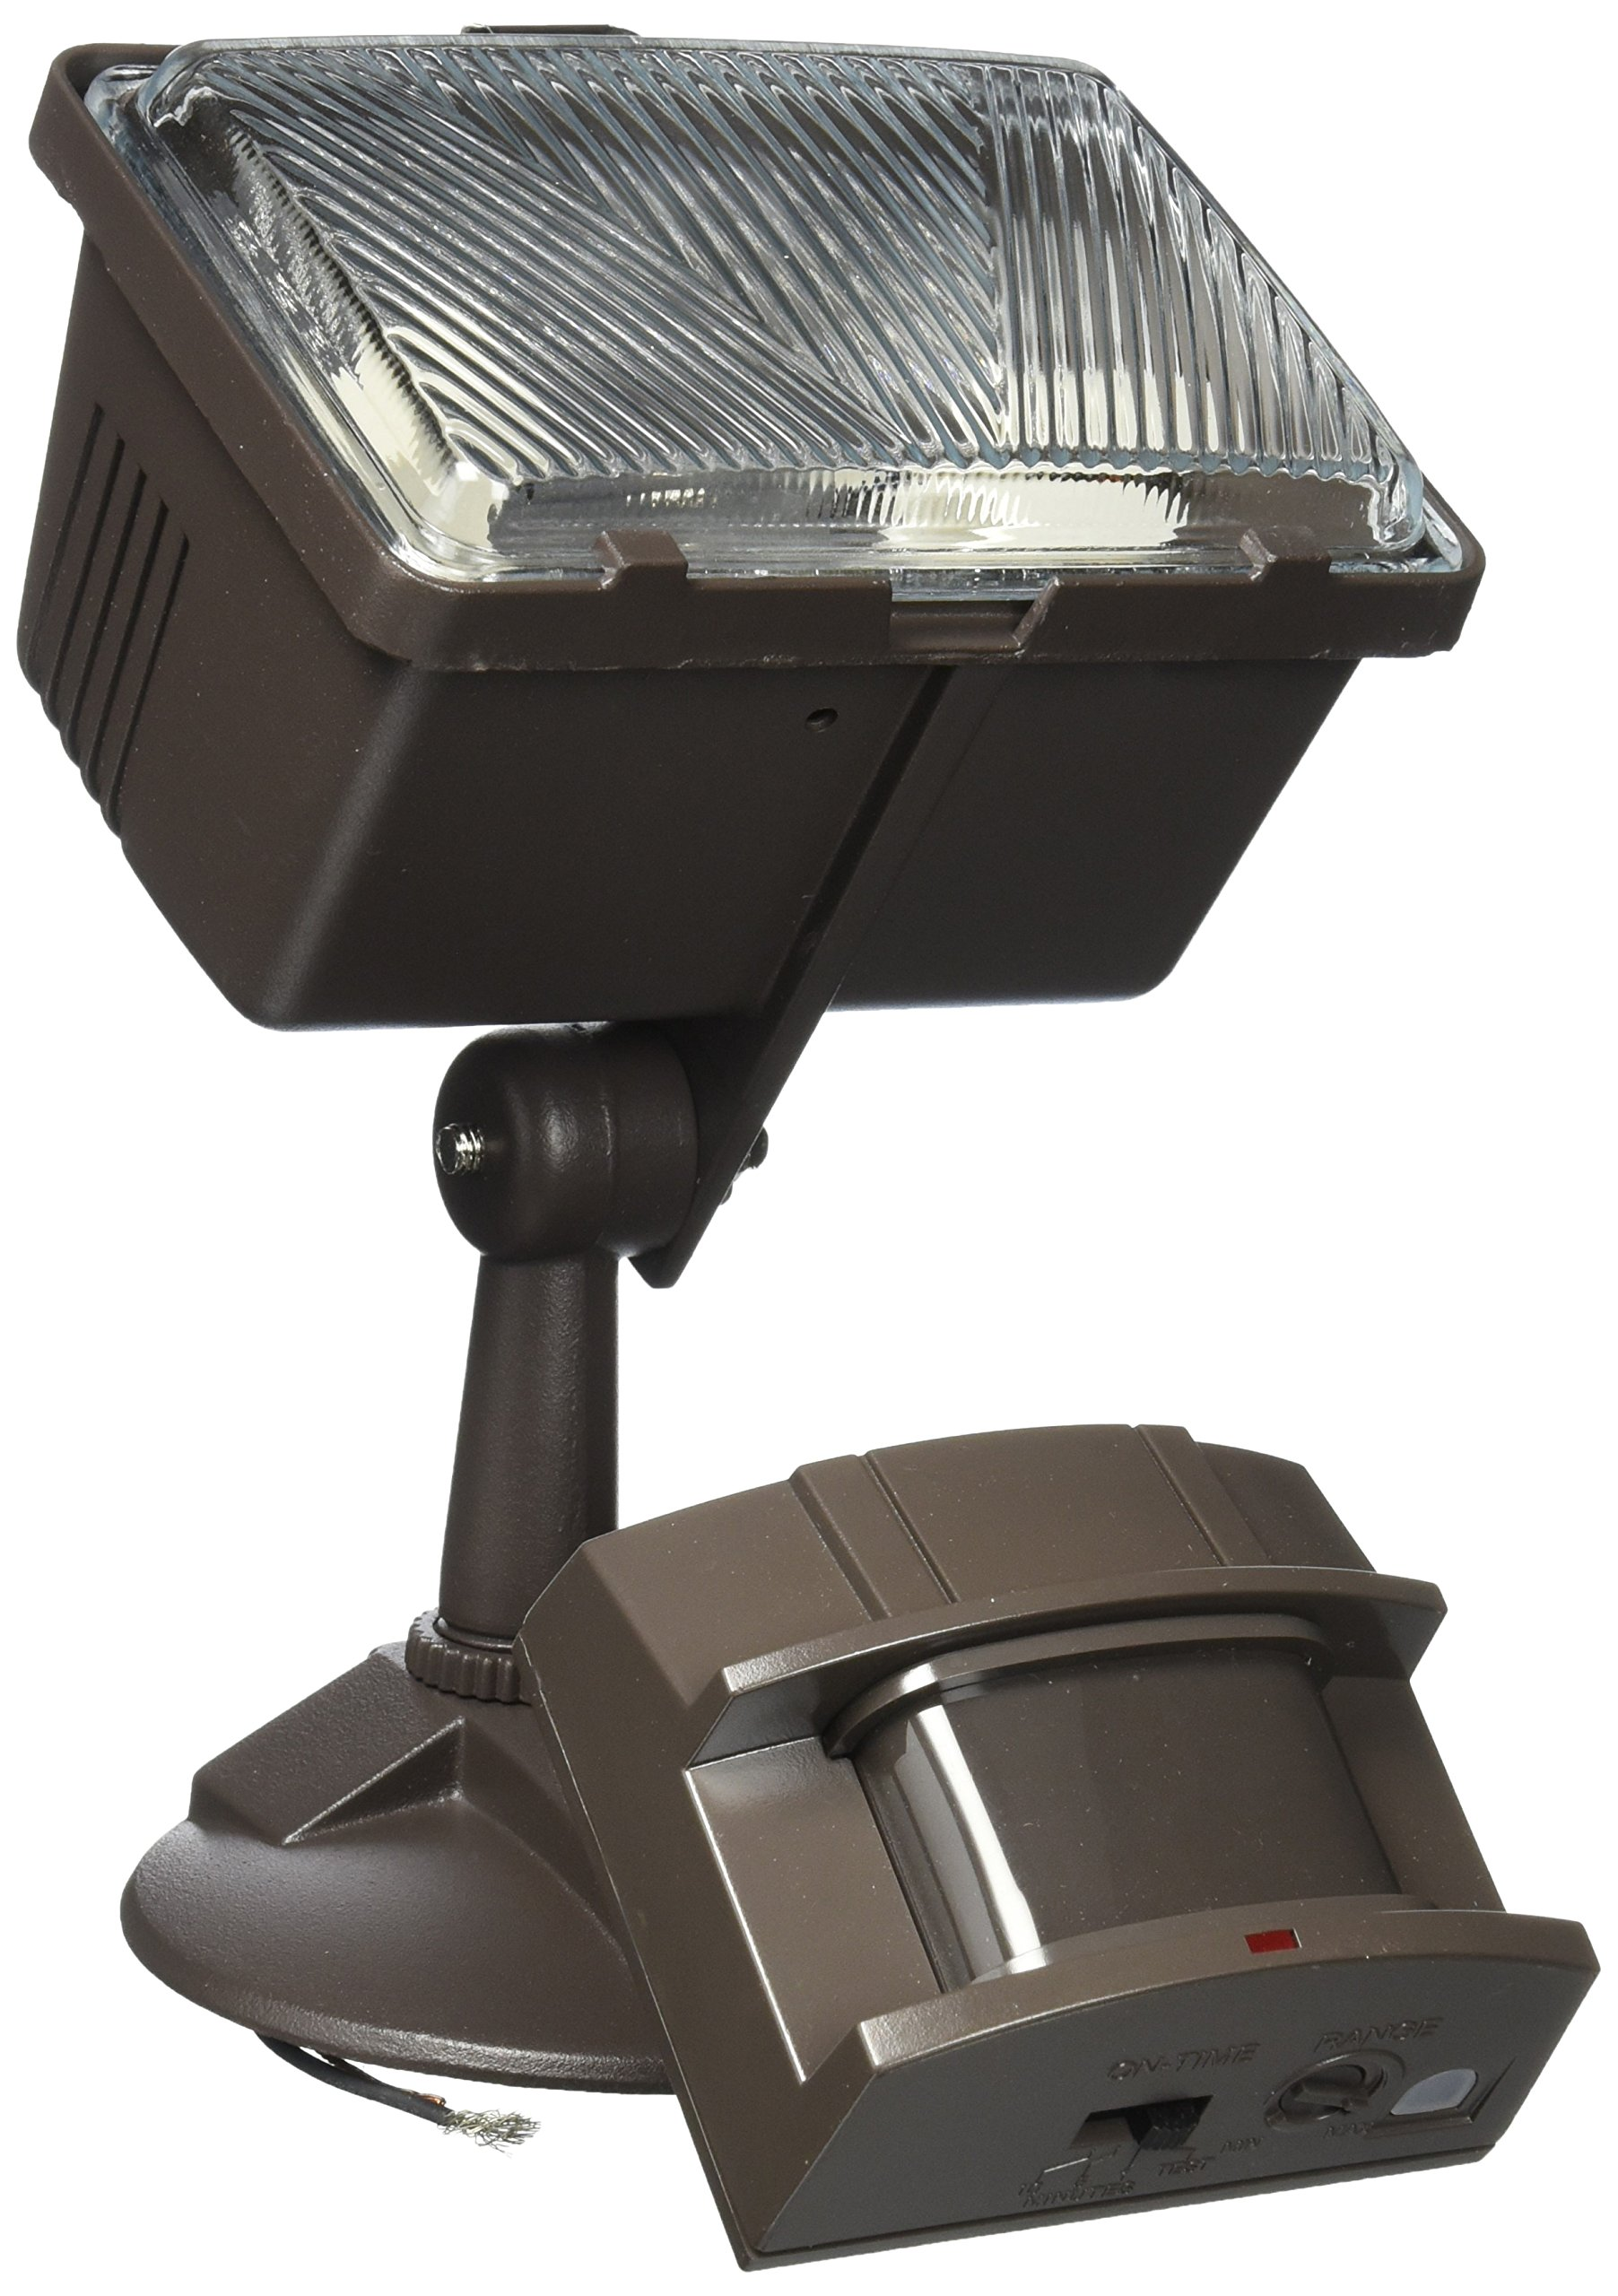 Heath/Zenith HZ-5525-BZ 250W 120V 11.5'' Security Light